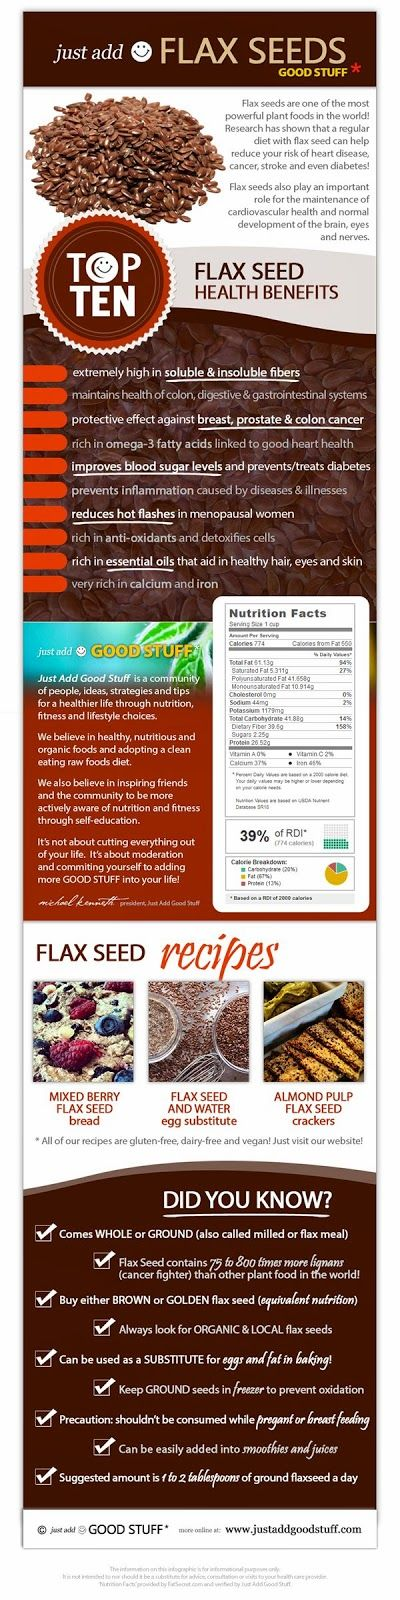 Top 10 Flax Seed Health Benefits [Infographic] including nutrition facts, a few recipes and suggested uses; guidelines on buying and storing